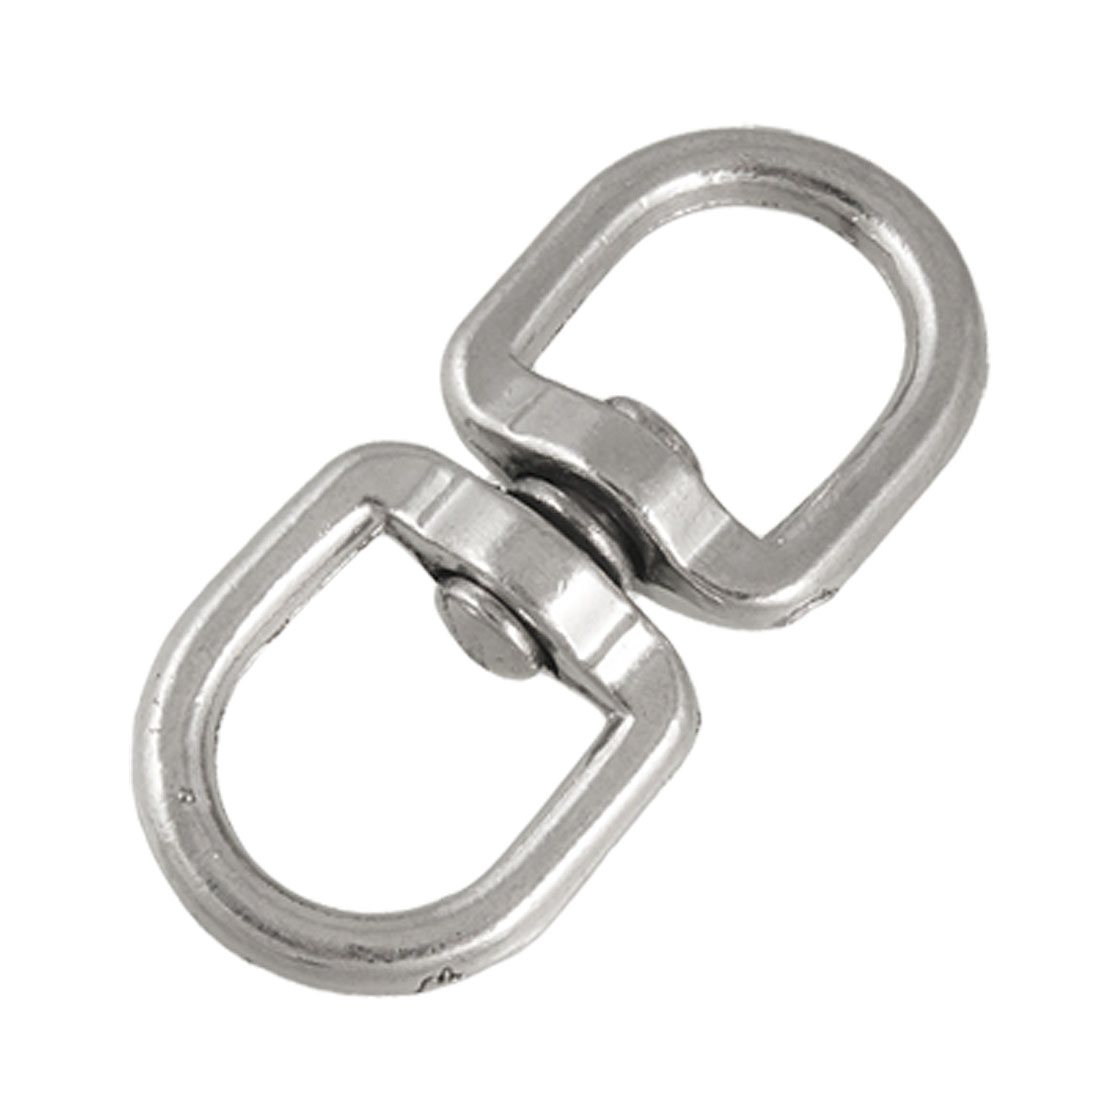 Size 6 Sailboat Zinc Alloy Swivel Eye Bolt Silver Tone